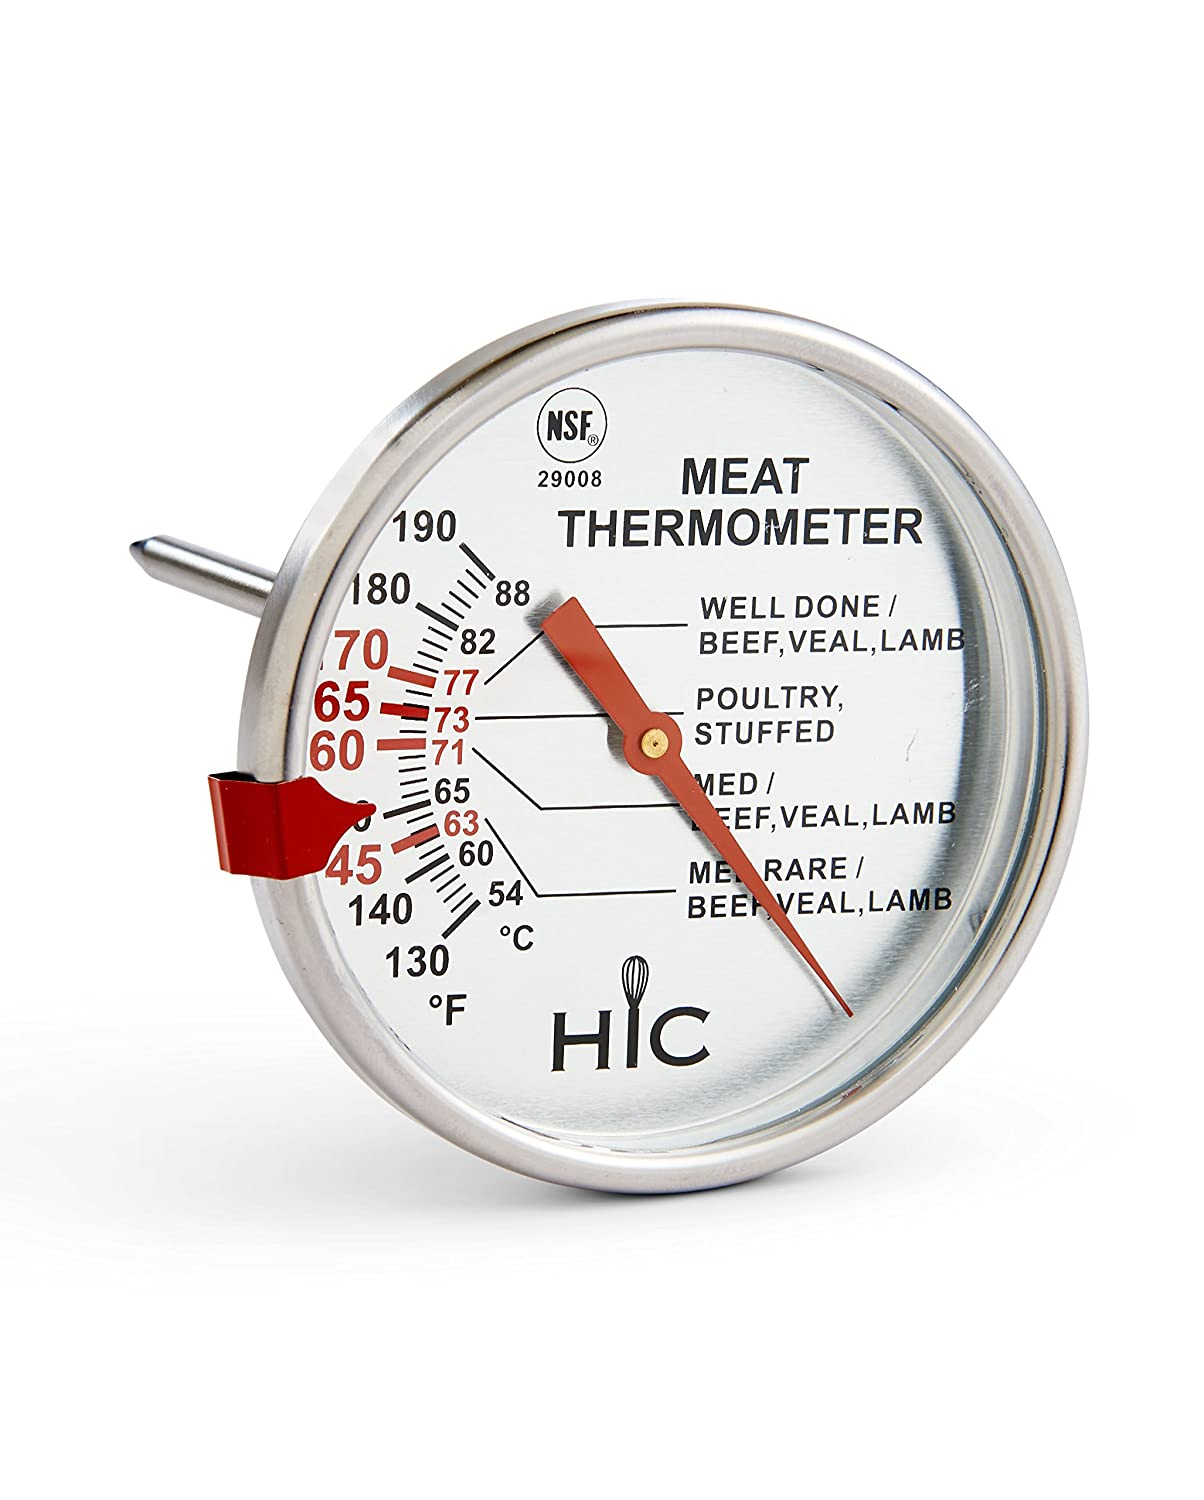 HIC Harold Import Co. 29008 HIC Roasting Meat Poultry Turkey Grill Thermometer, Oven Safe, Large 3-Inch Easy-Read Face, Stainless Steel Stem and Housing